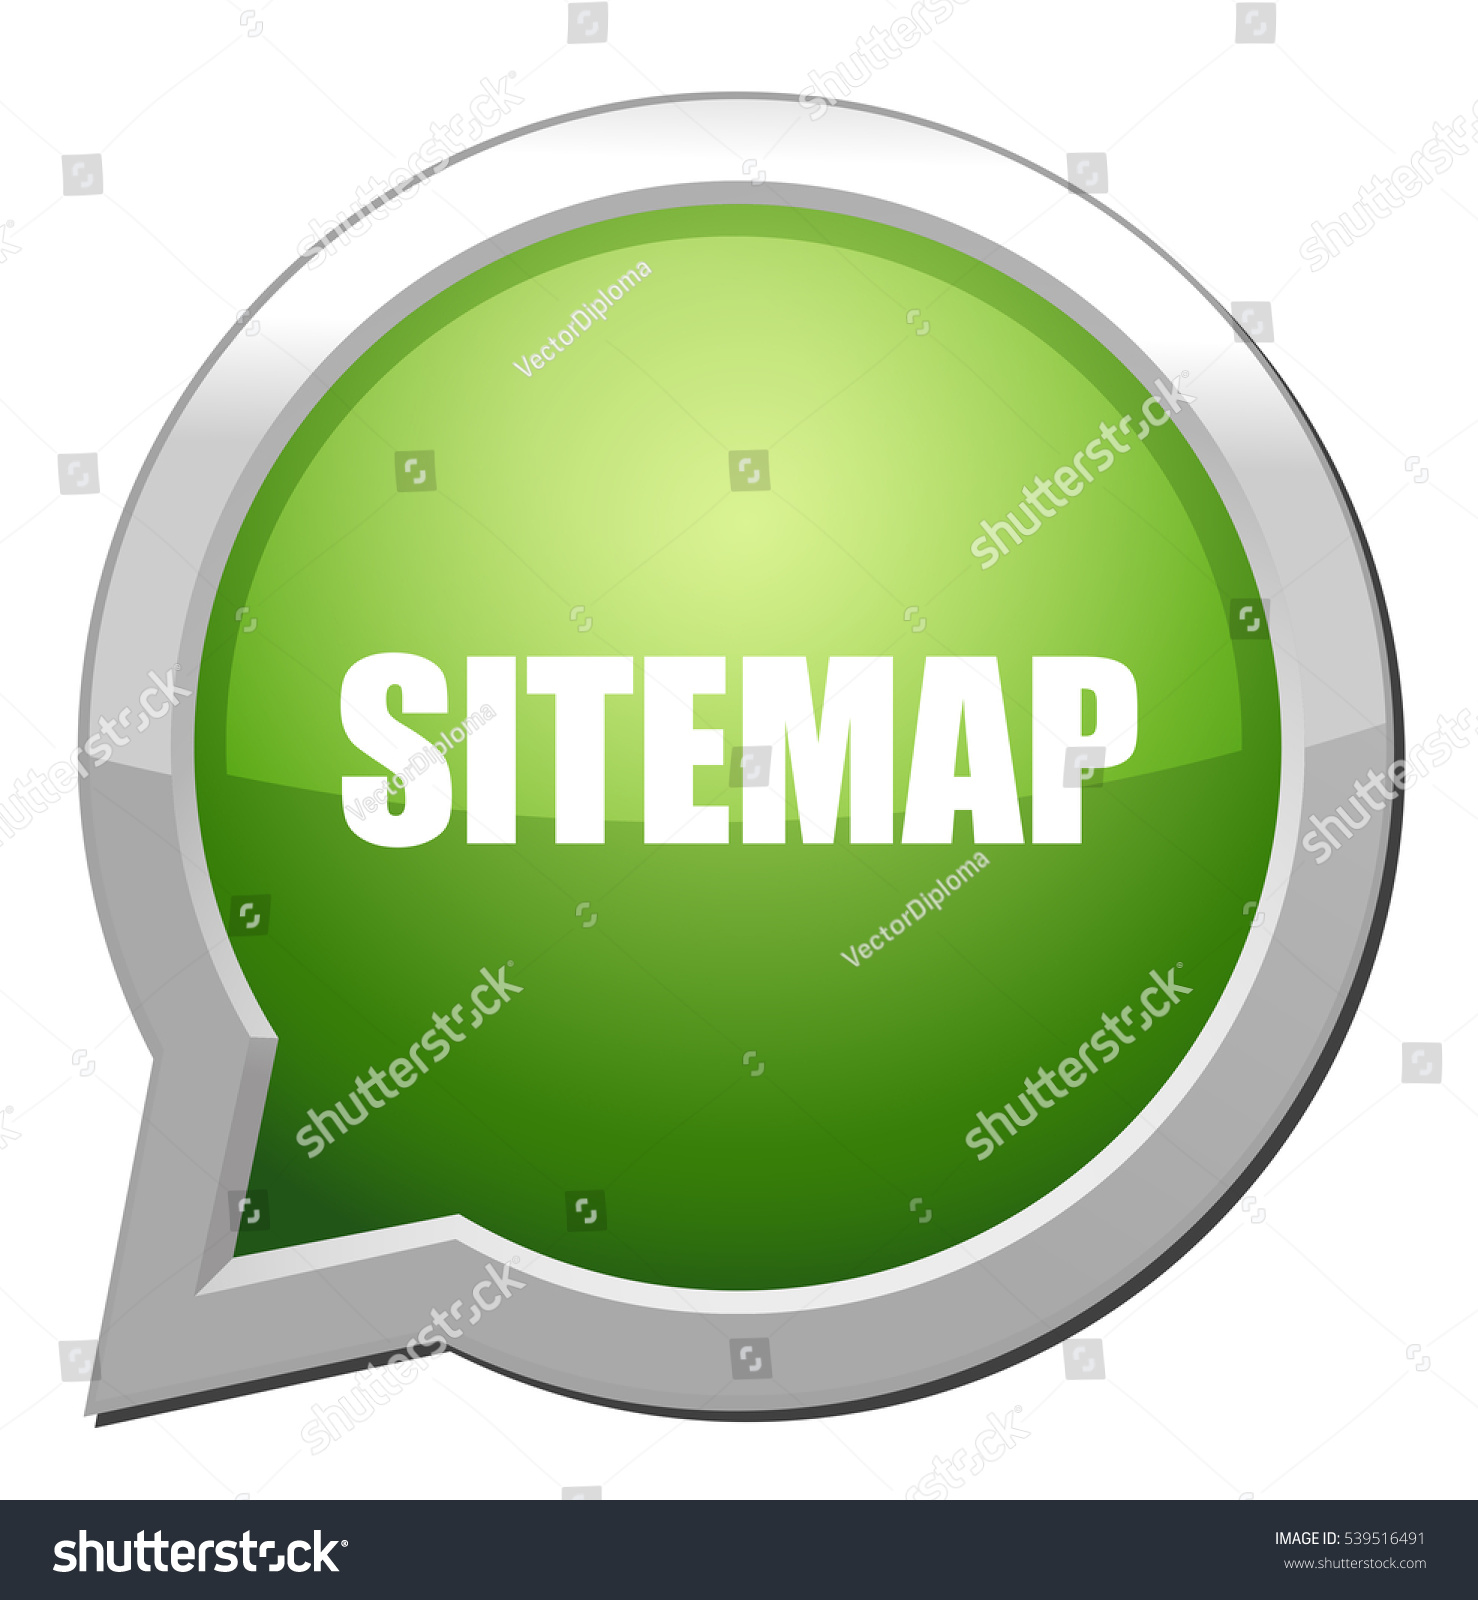 Sitemap: Sitemap Icon Stock Vector Illustration 539516491